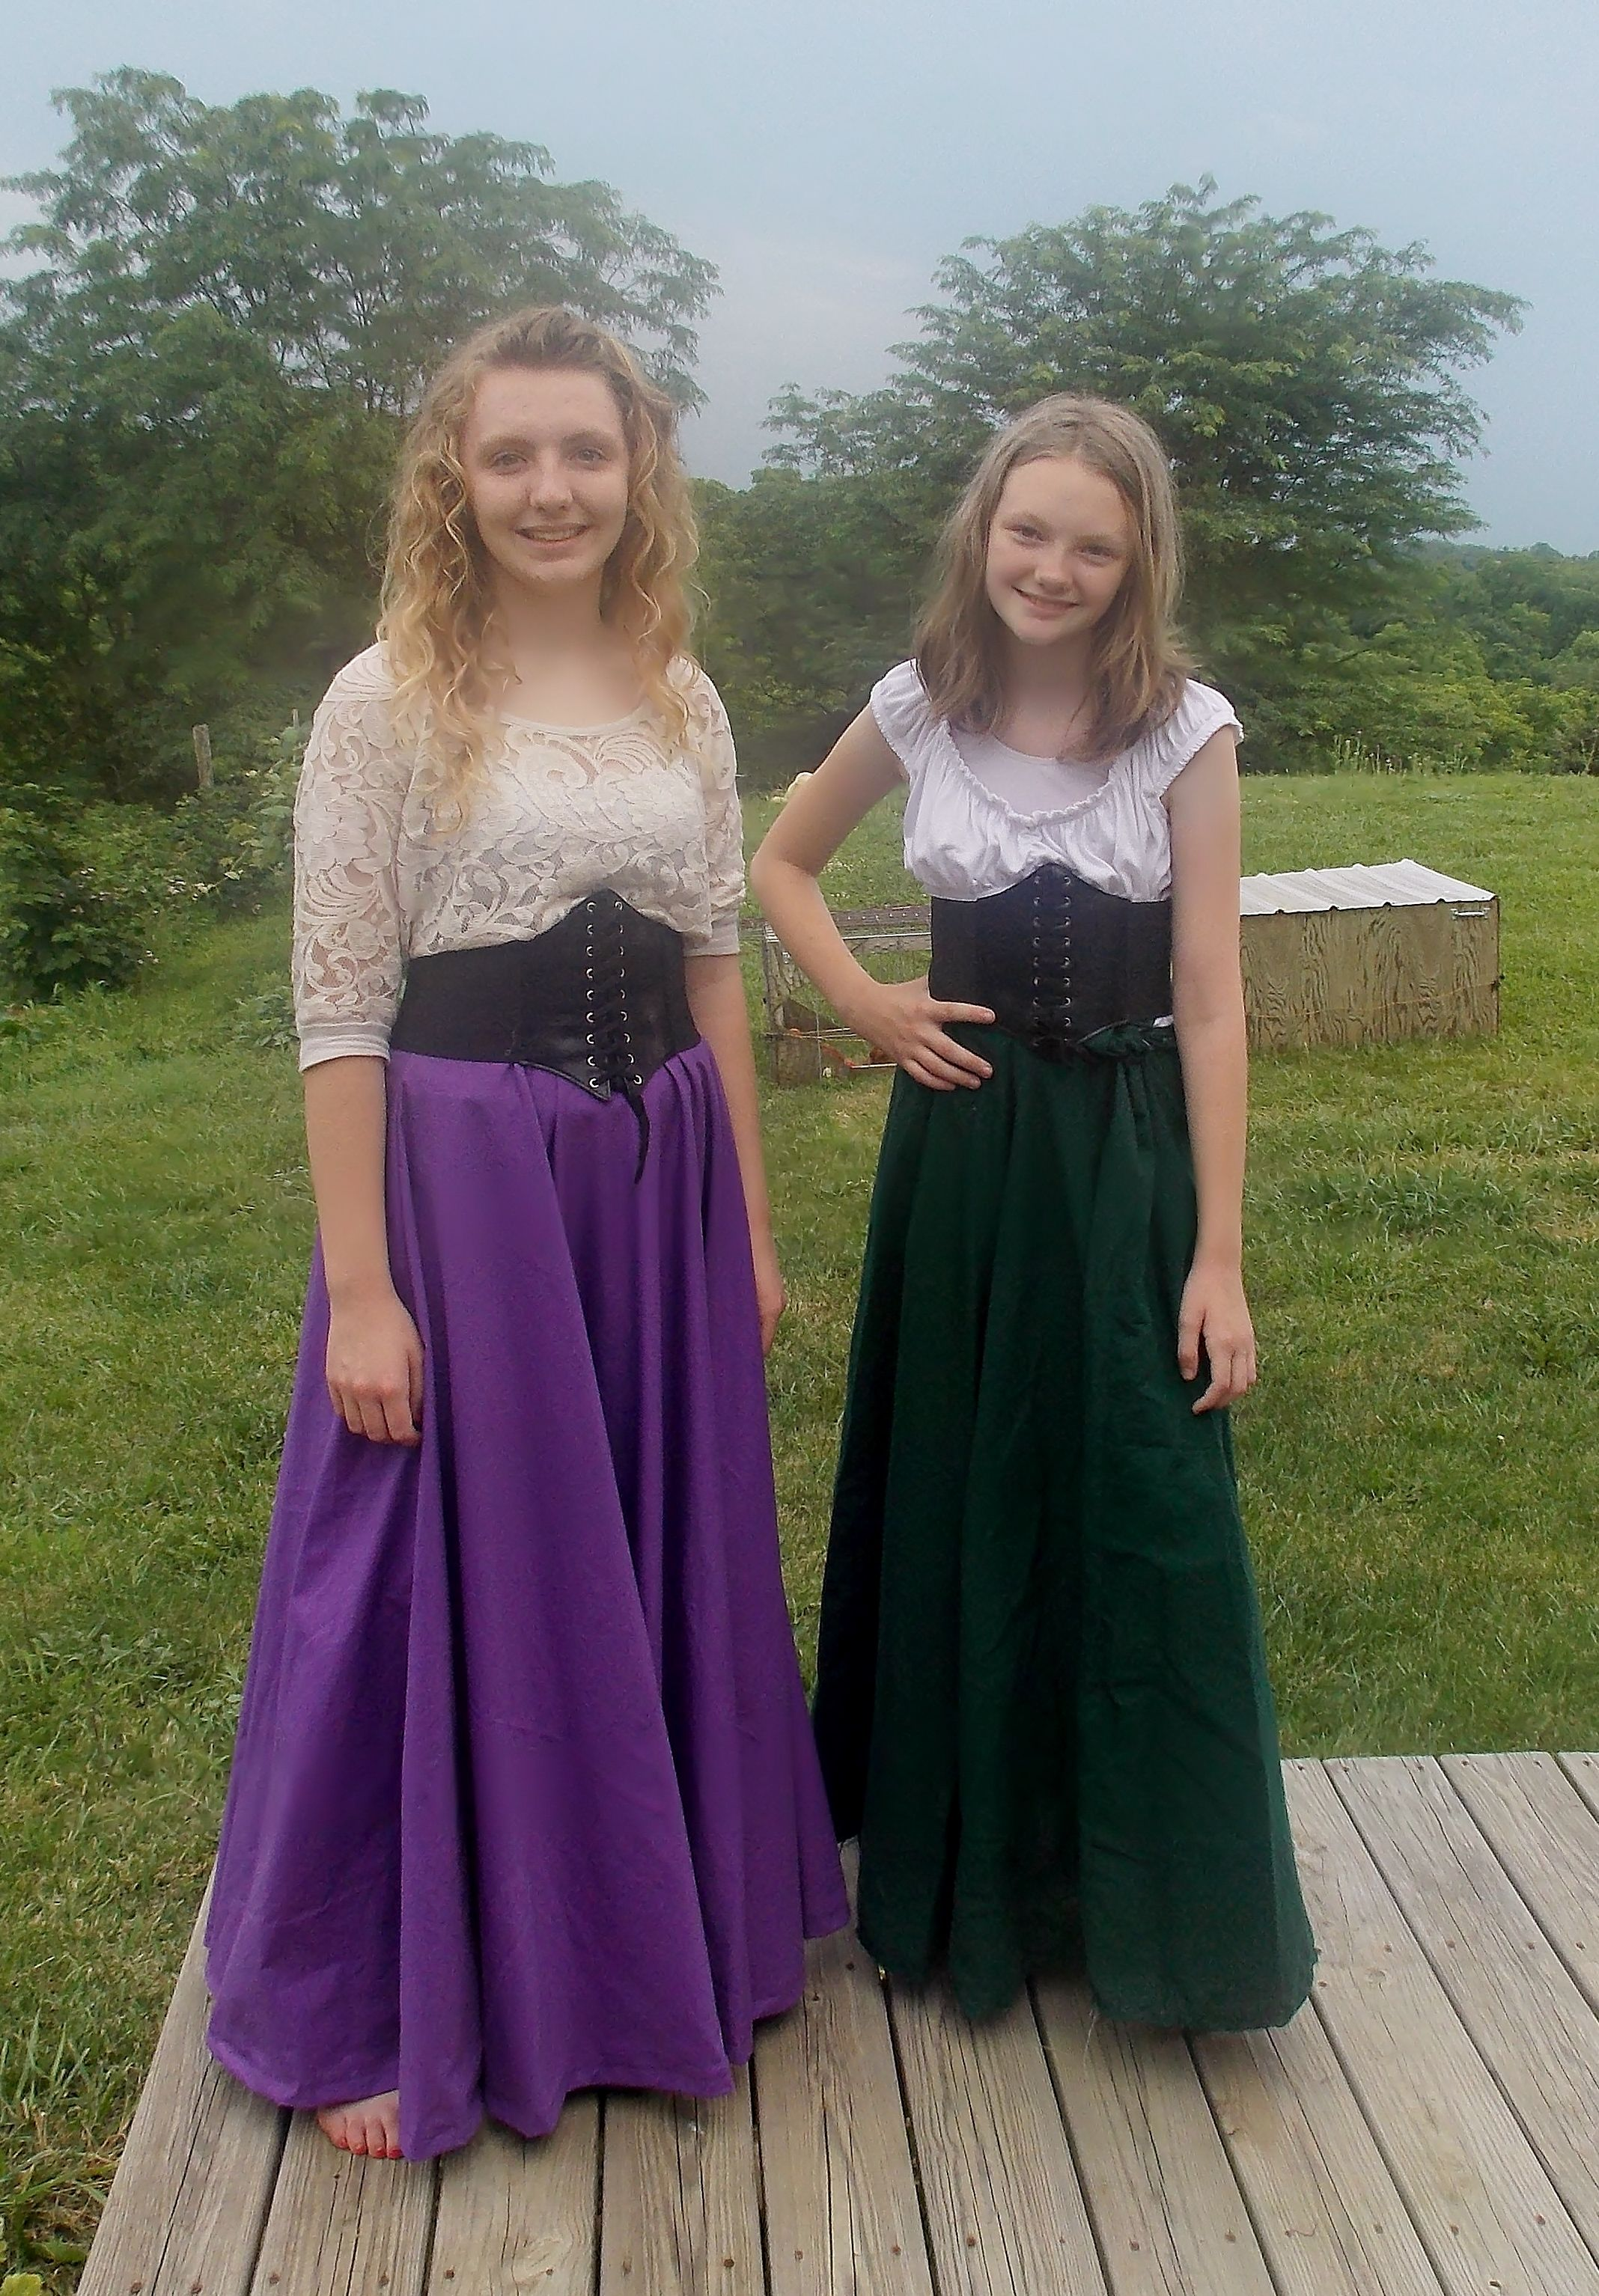 Homemade medieval outfits: Circle skirts, peasant blouses ...